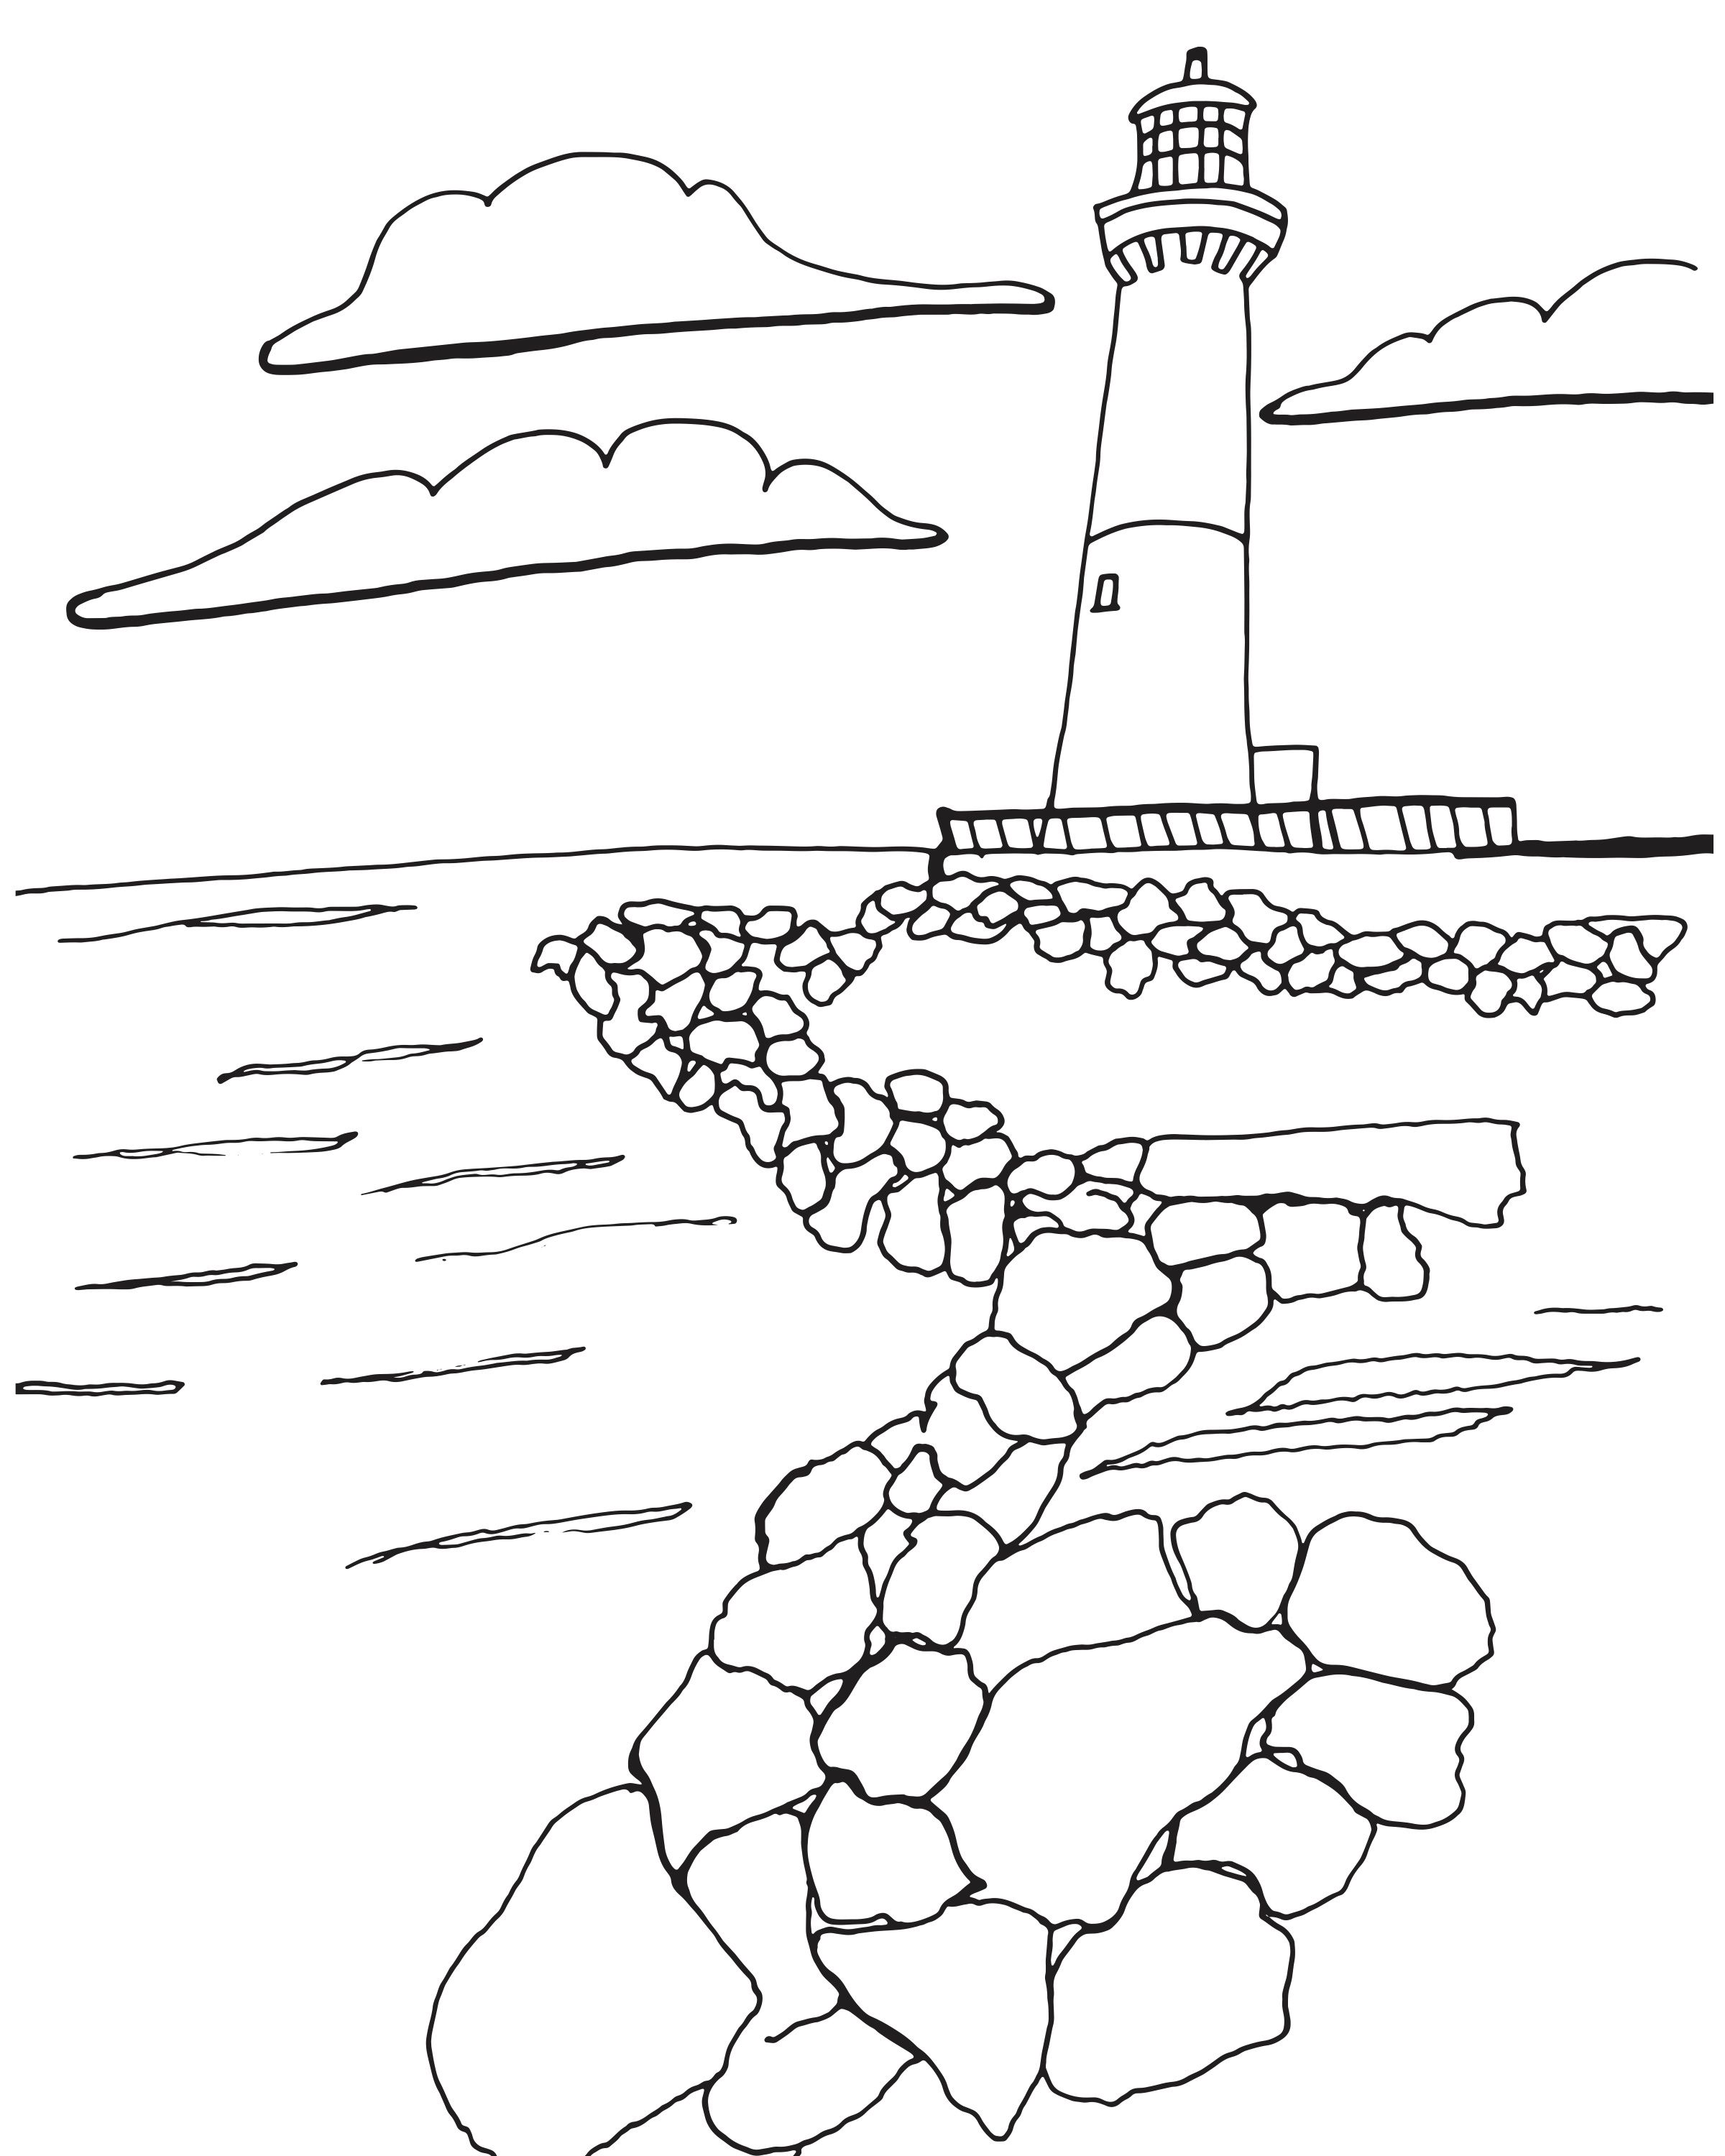 Sketch Of Old Barney Featured In The Colorful Coast Lbi Edition